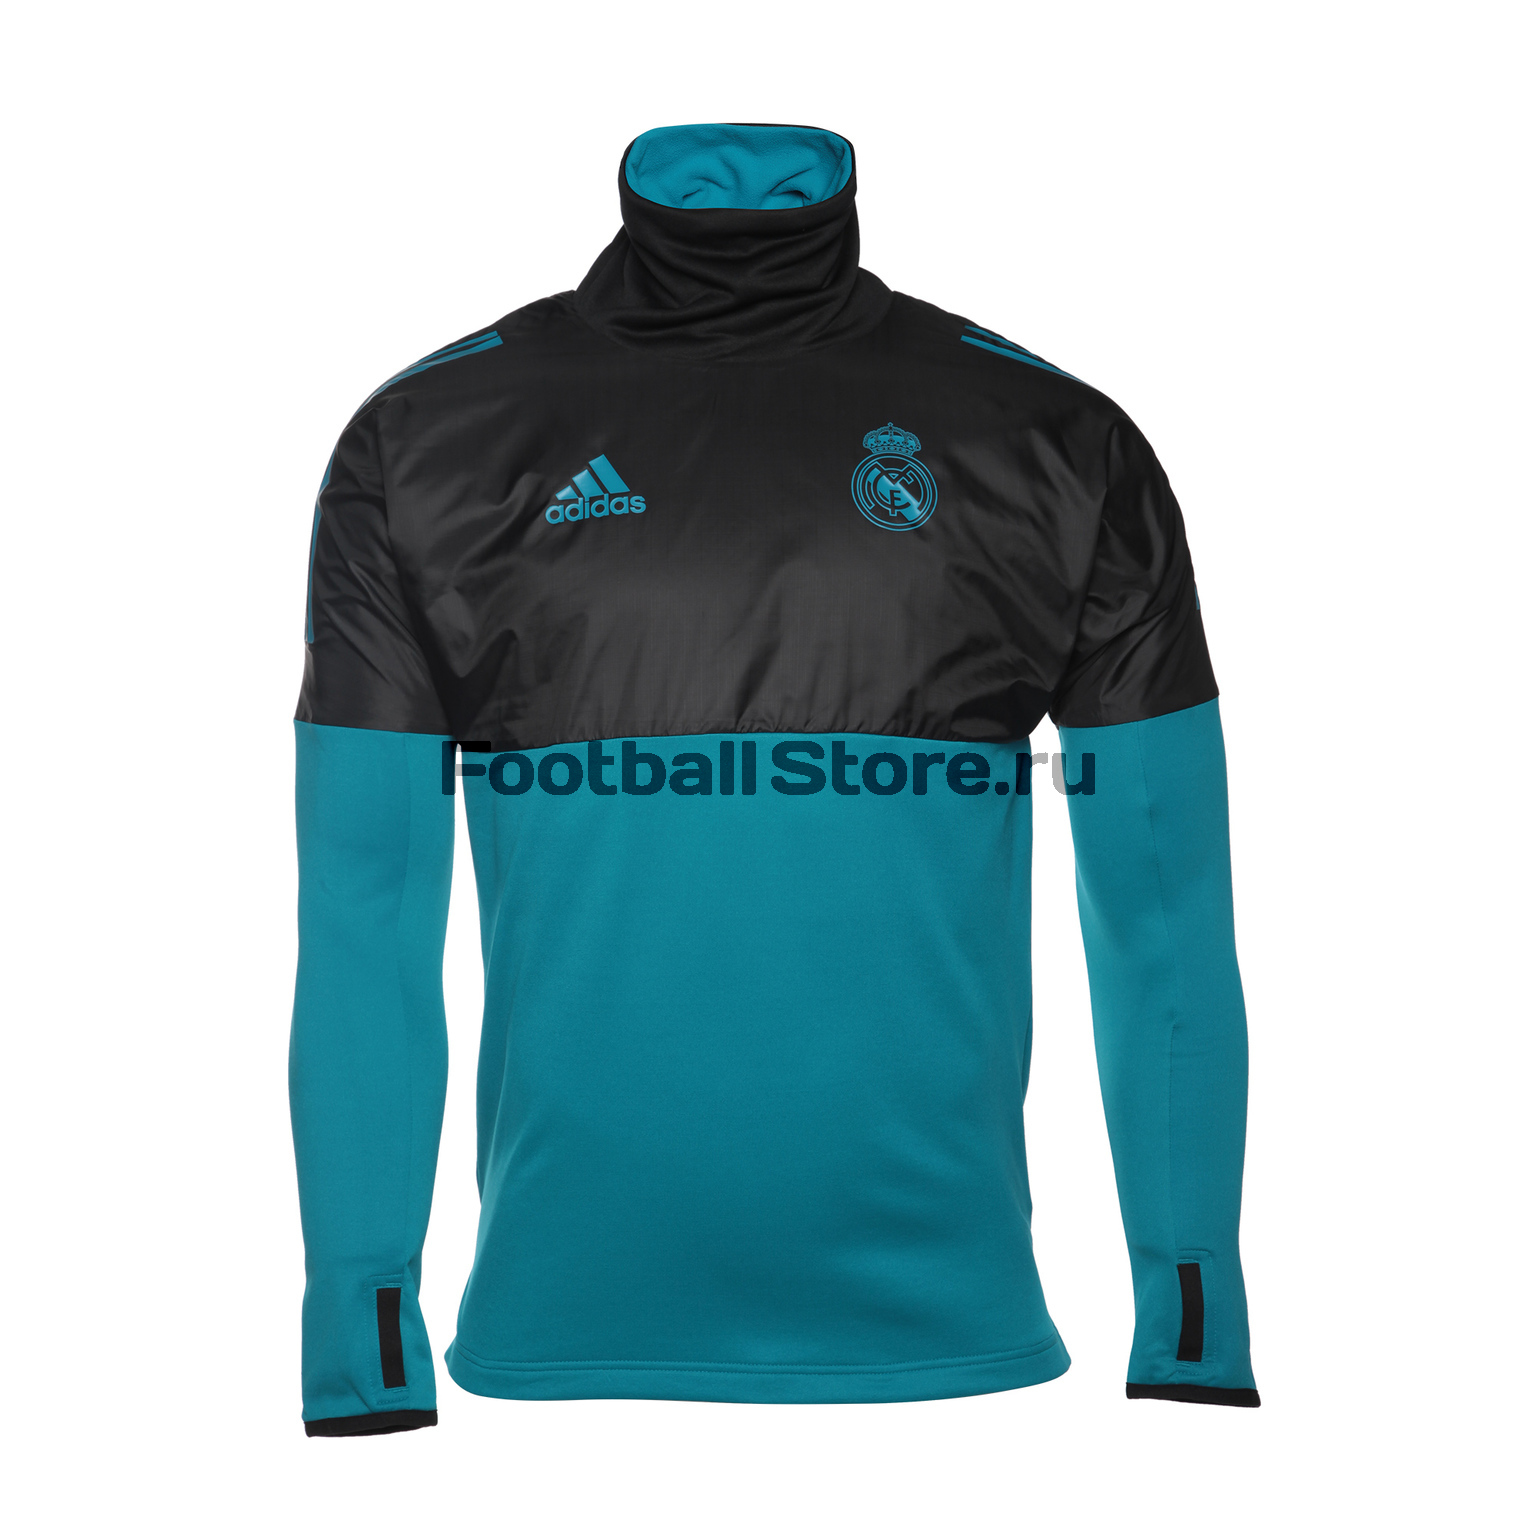 Real Madrid Adidas Свитер Adidas Real Madrid EUHybrid Top BQ7851 real madrid adidas свитер adidas real madrid euhybrid top bq7851